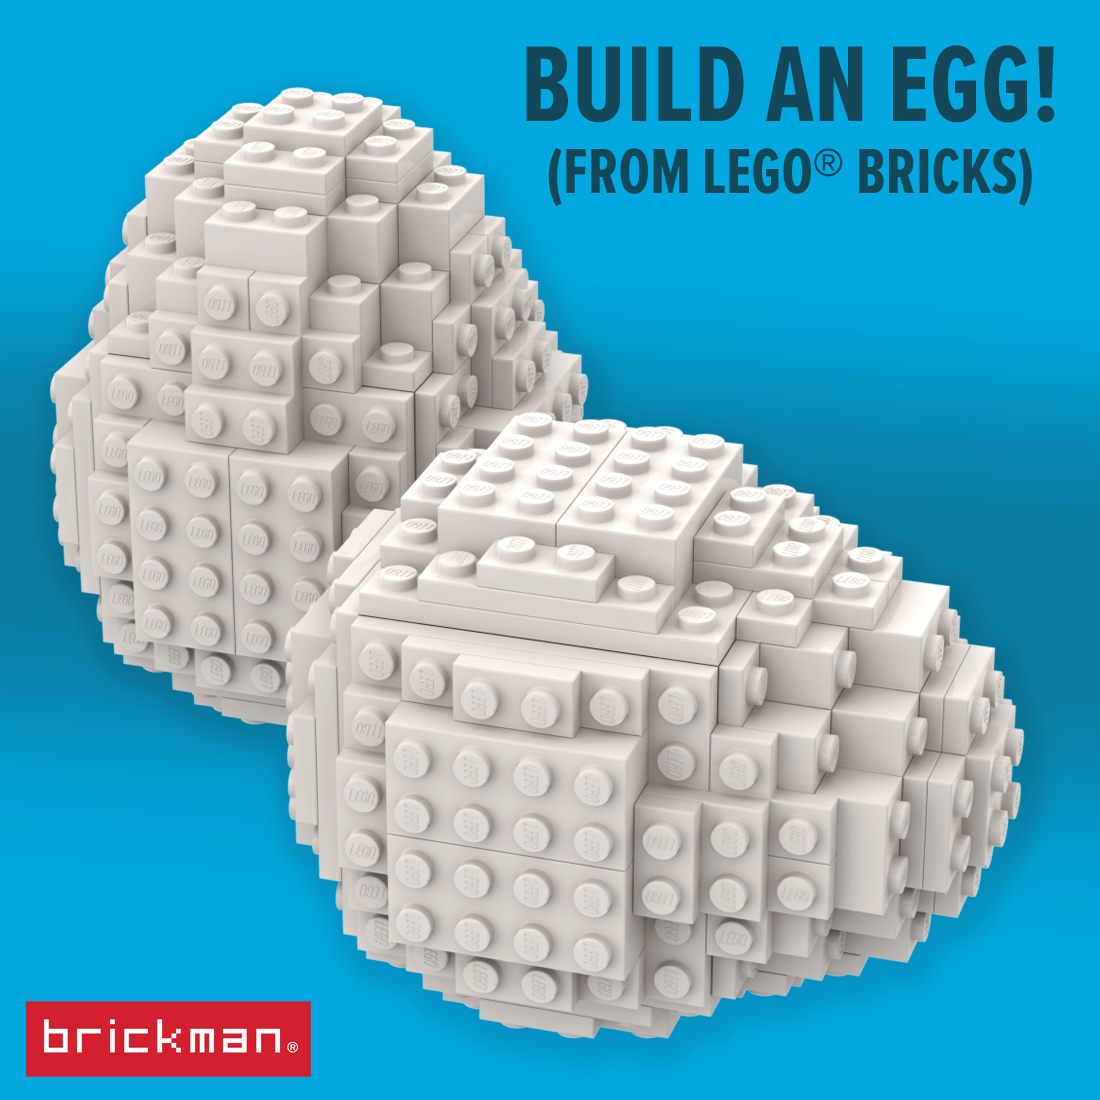 Build a LEGO Egg!